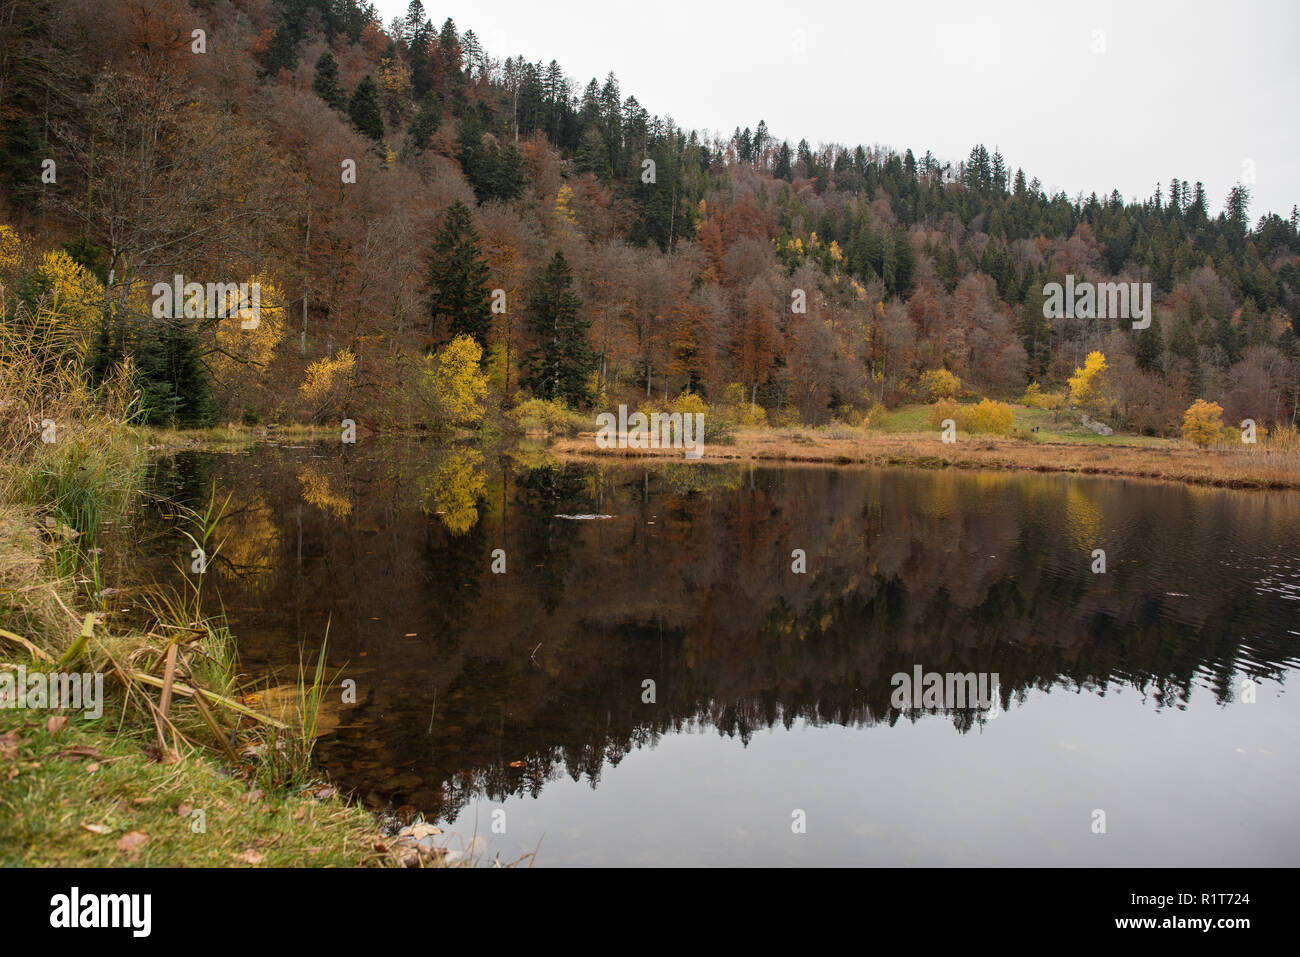 Nonnenmattweiher in south part from germany - Stock Image